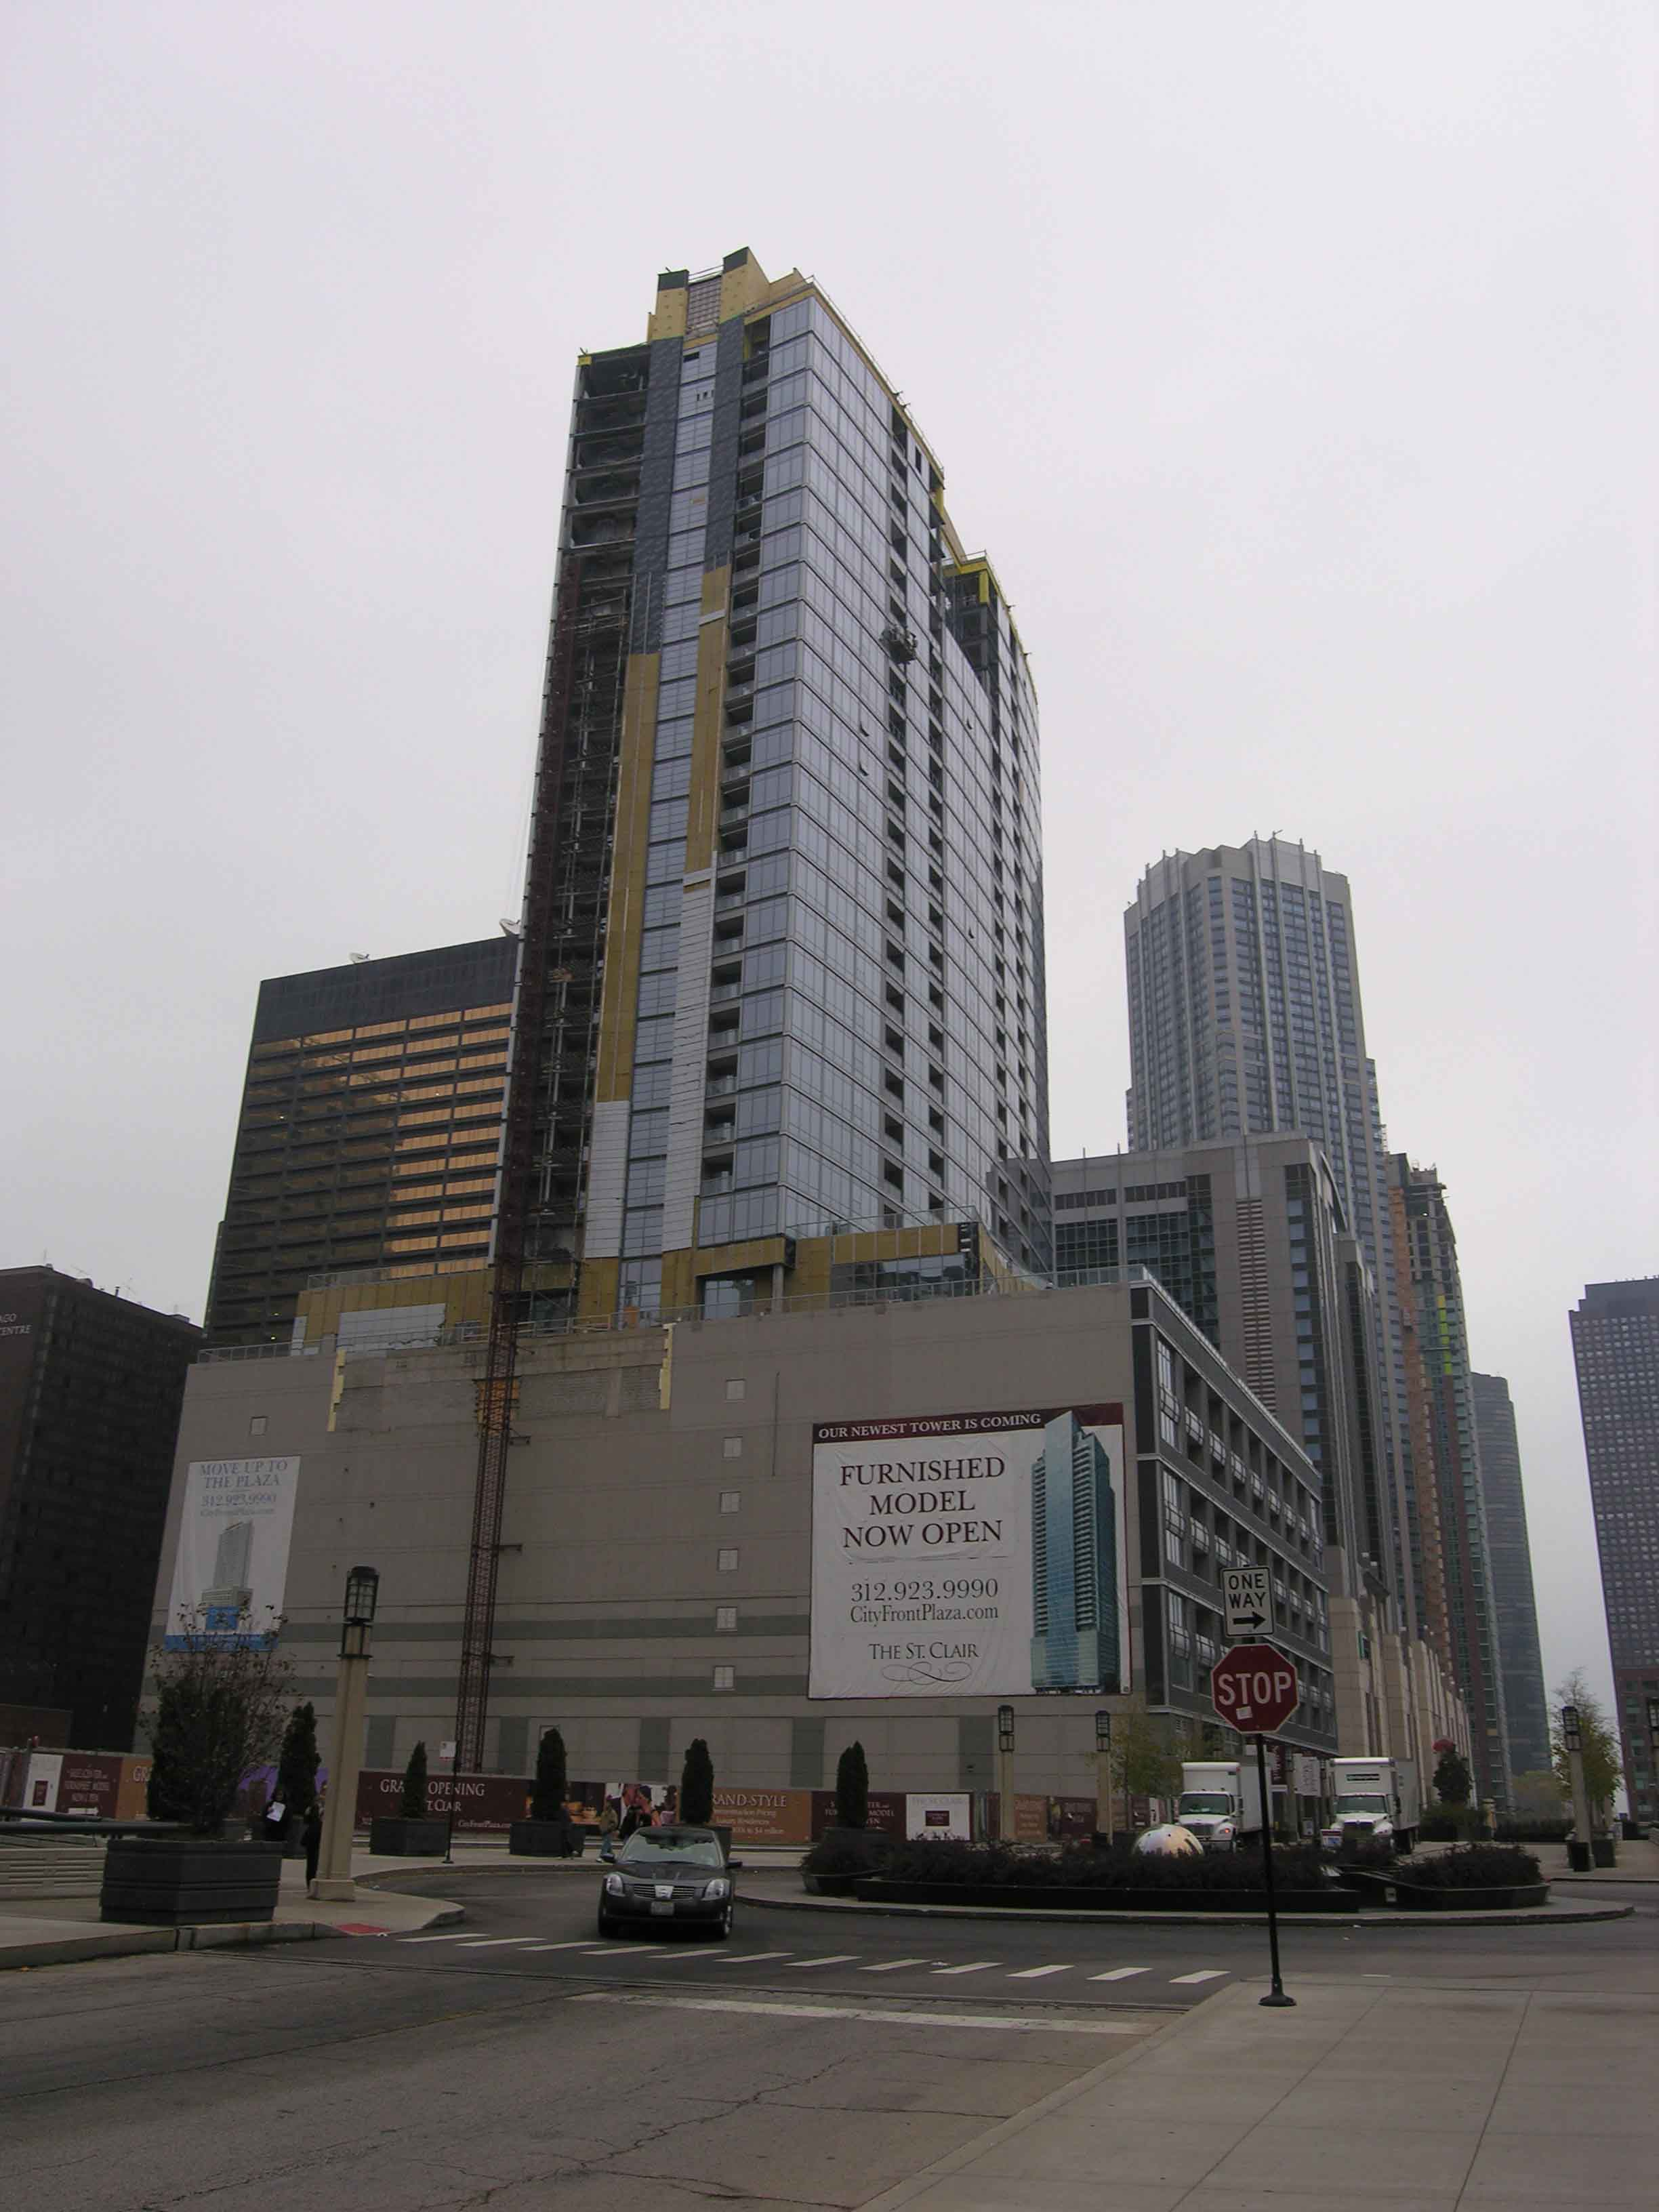 Construction update: The Fairbanks at Cityfront Plaza nearing completion